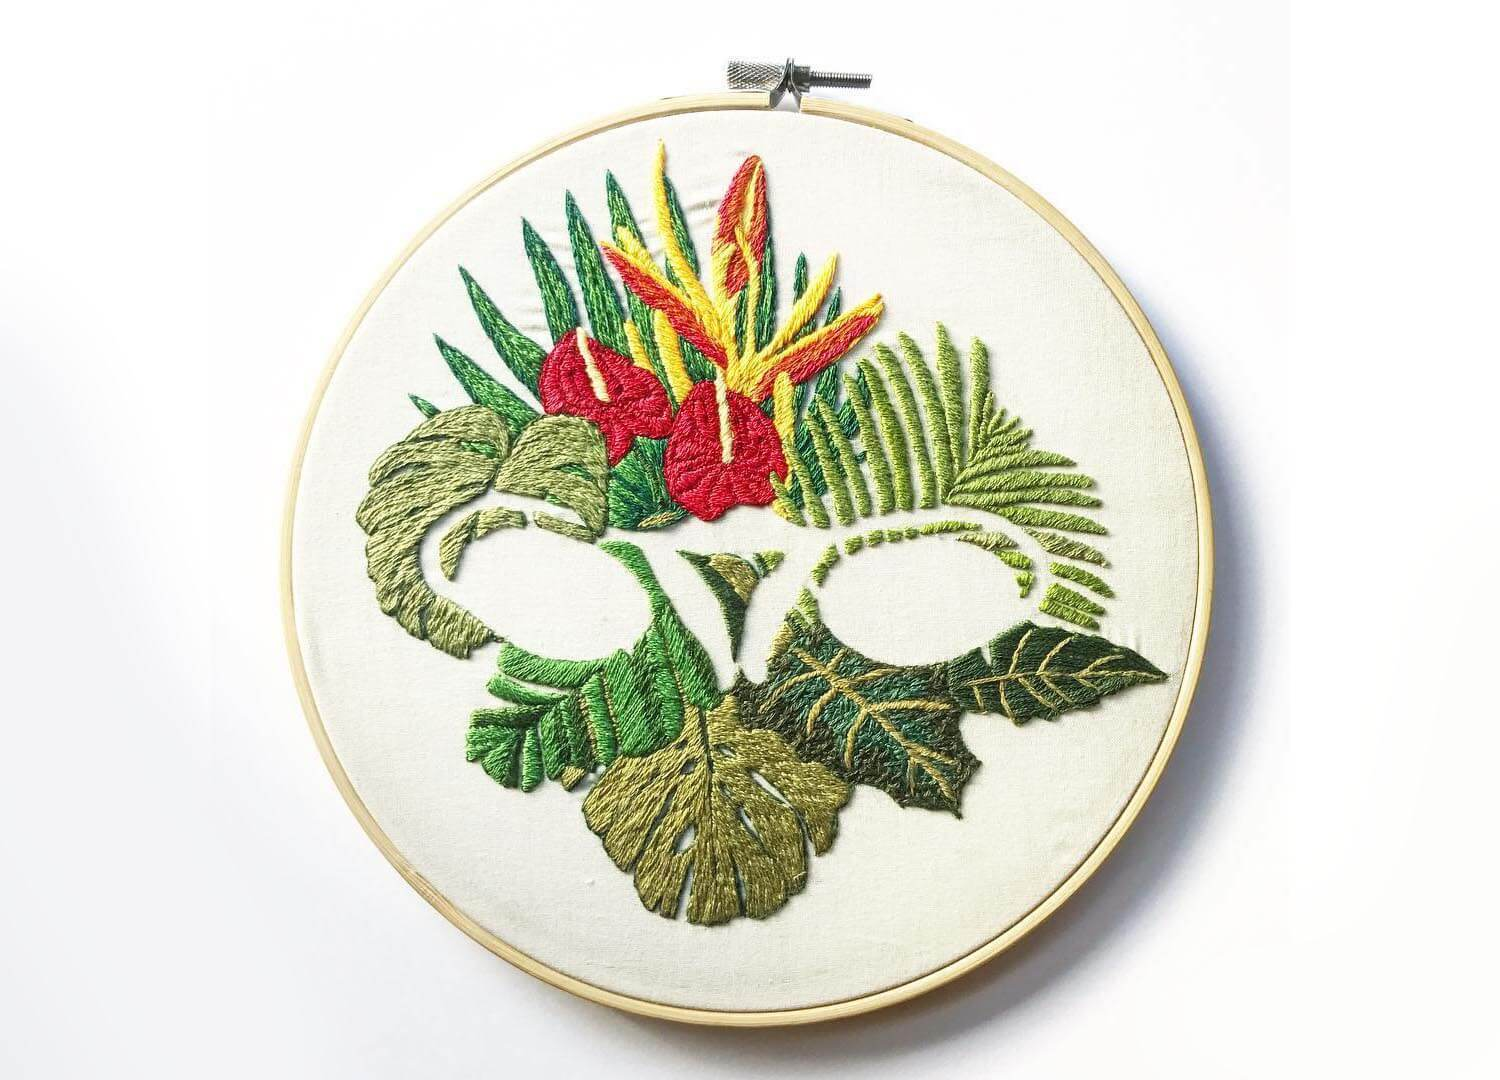 Ovaries embroidery with flower motif